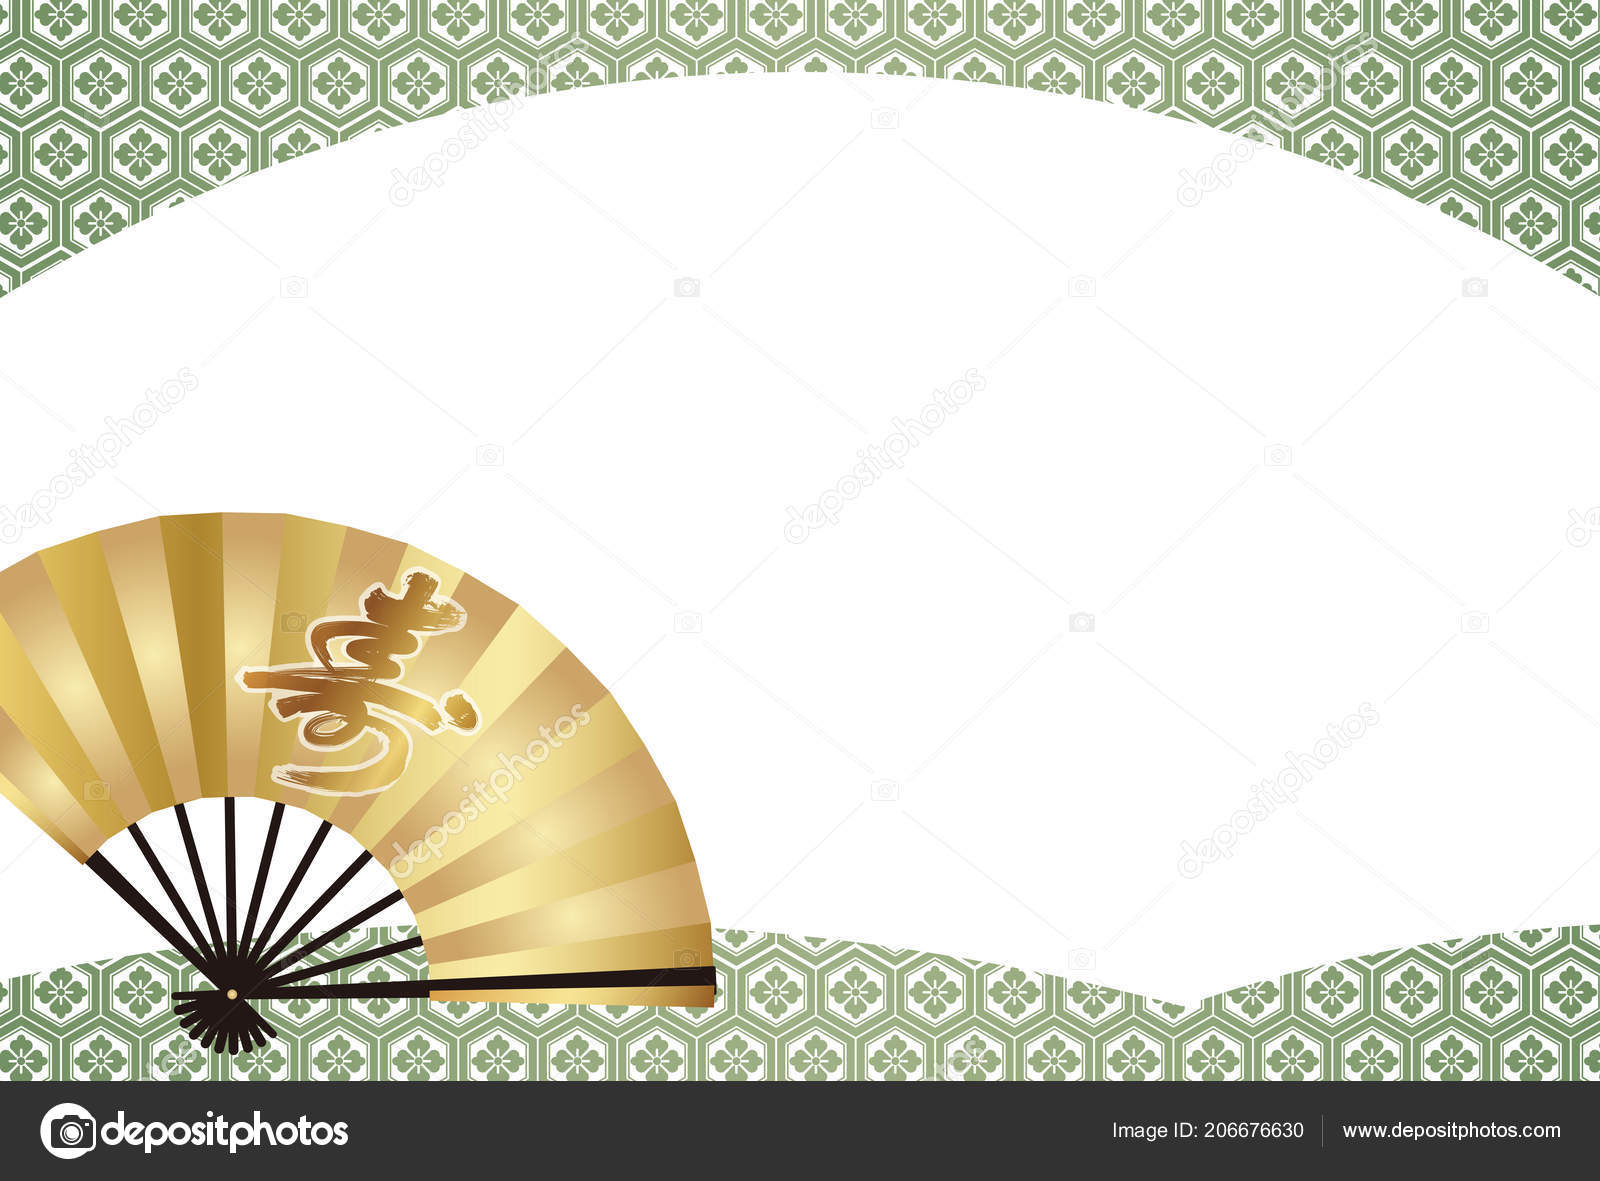 New Years Card Template Gold Folding Fan Traditional Japanese Pattern Stock Vector